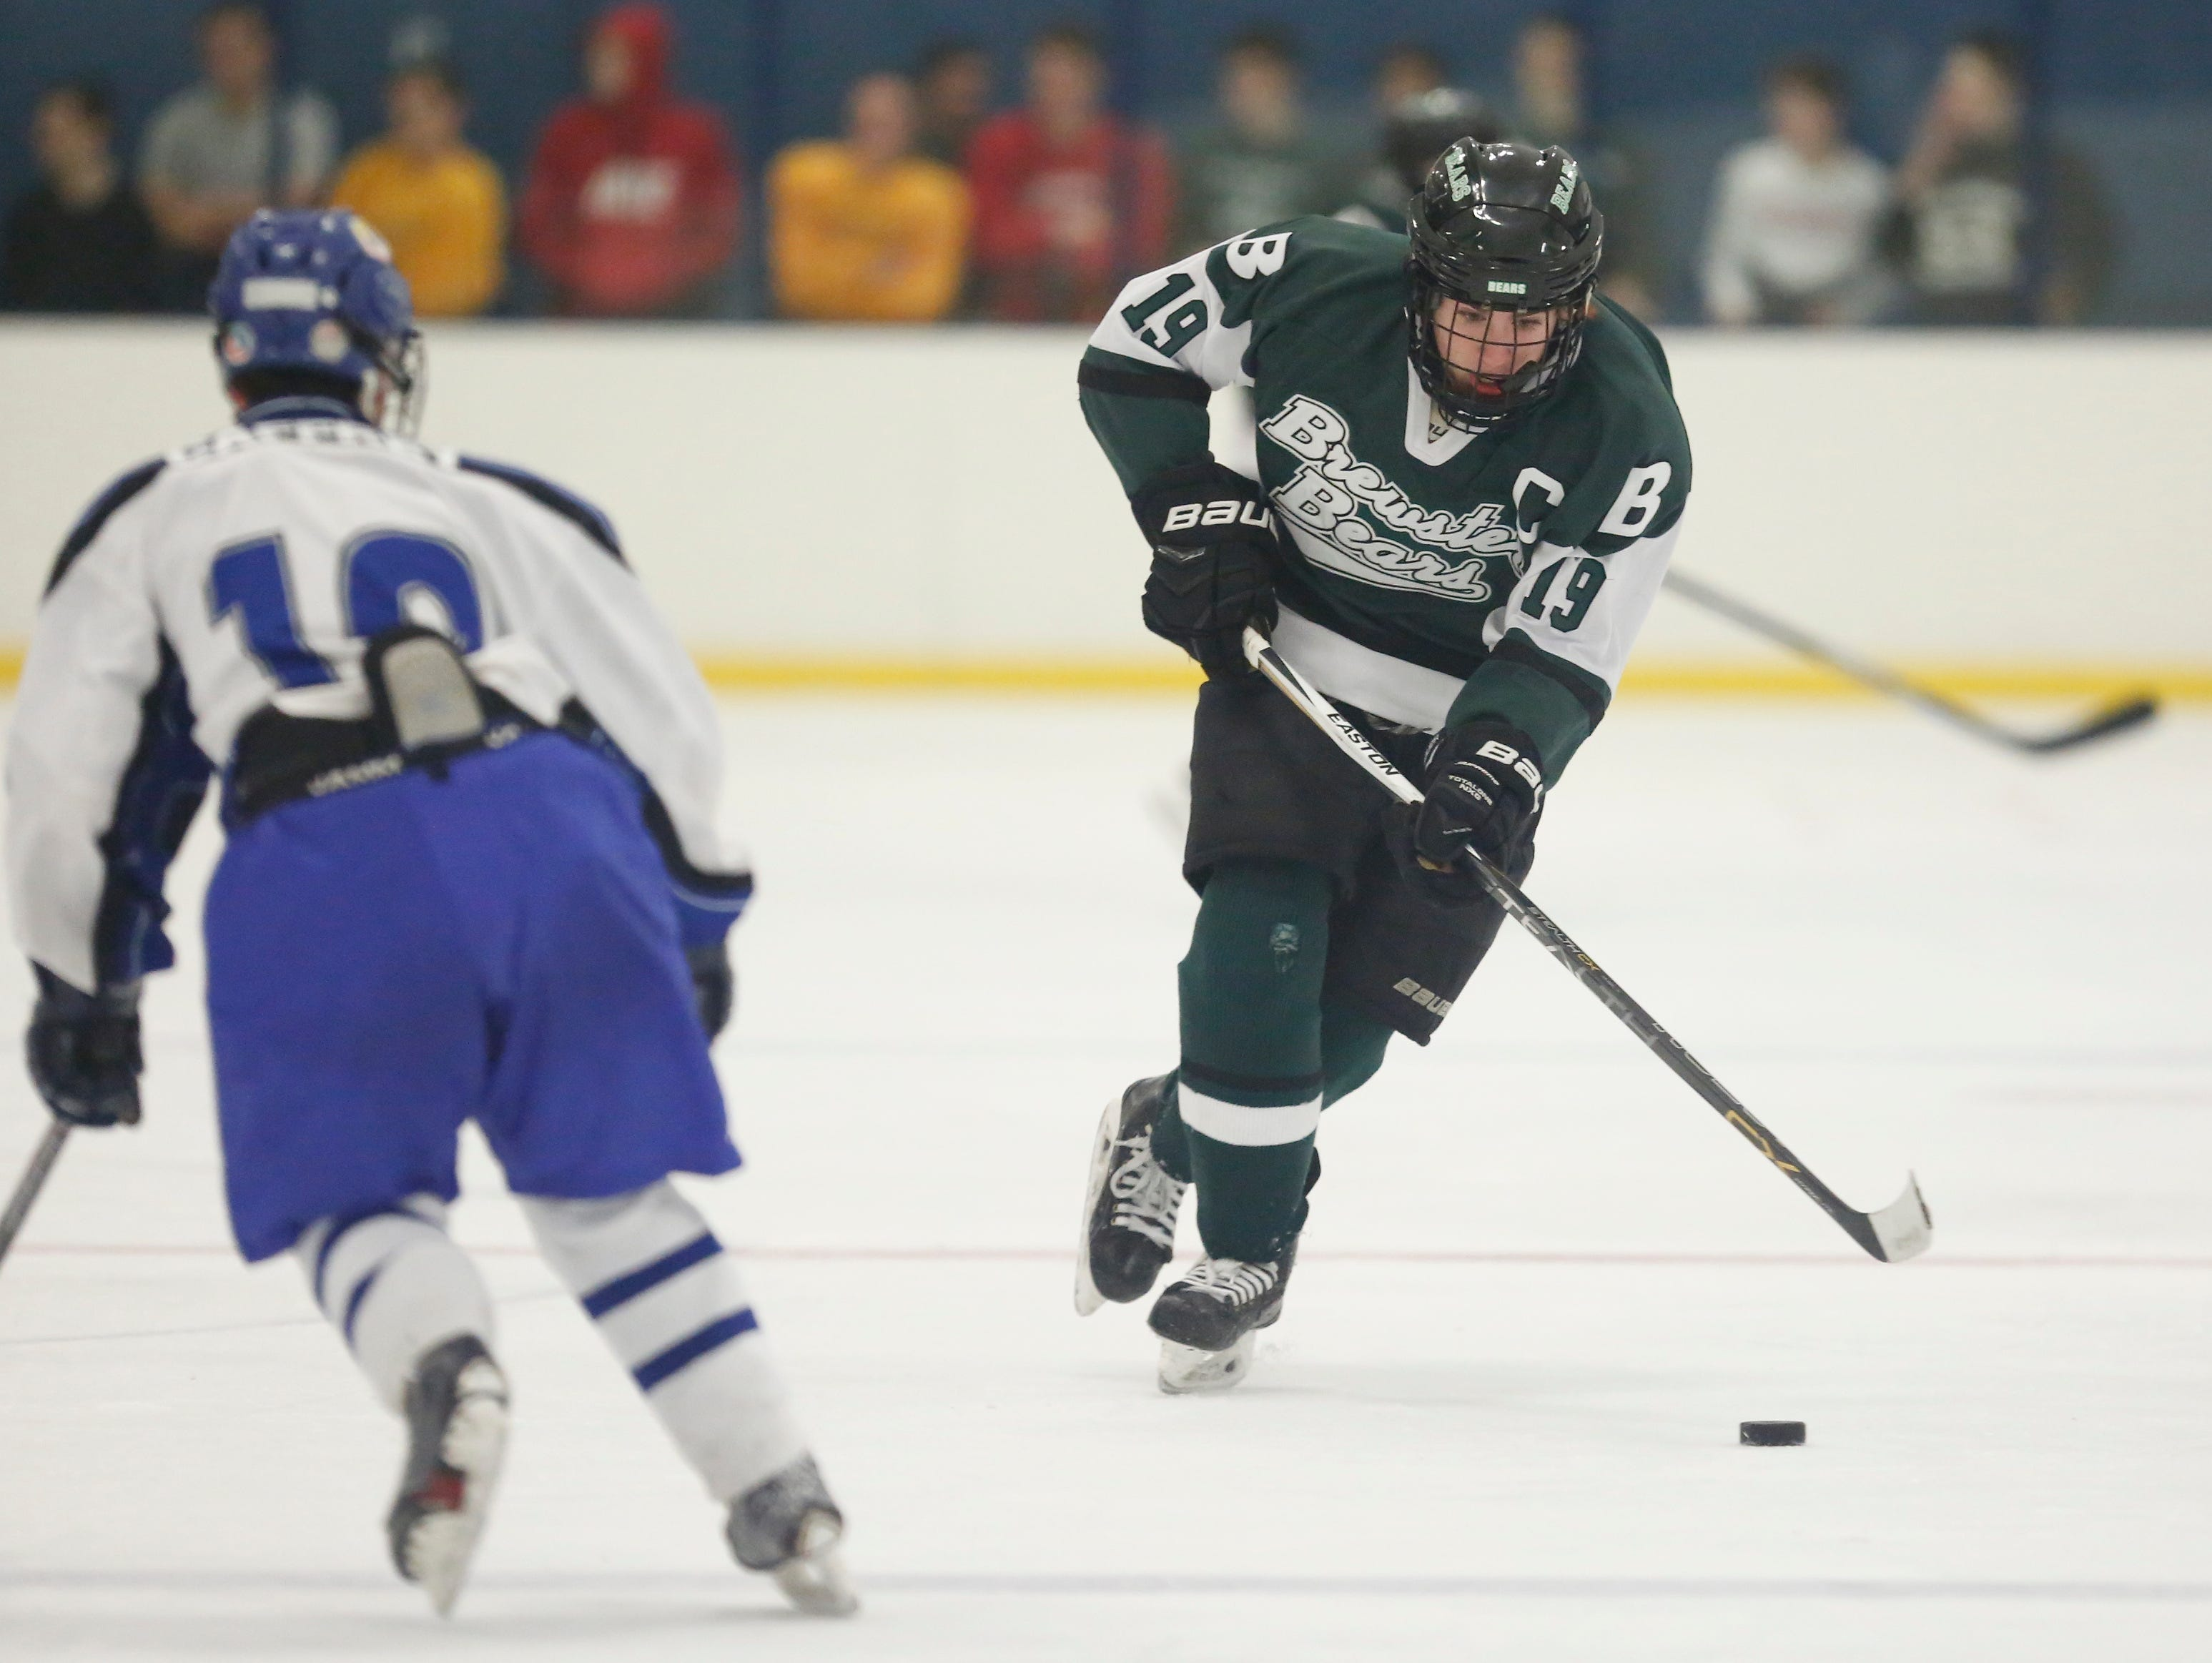 Brewster's Kyle Dineen (19) skates with the puck during their 4-4 overtime tie against Pearl River at Sport-O-Rama in Monsey on Saturday, Jan. 9, 2016.